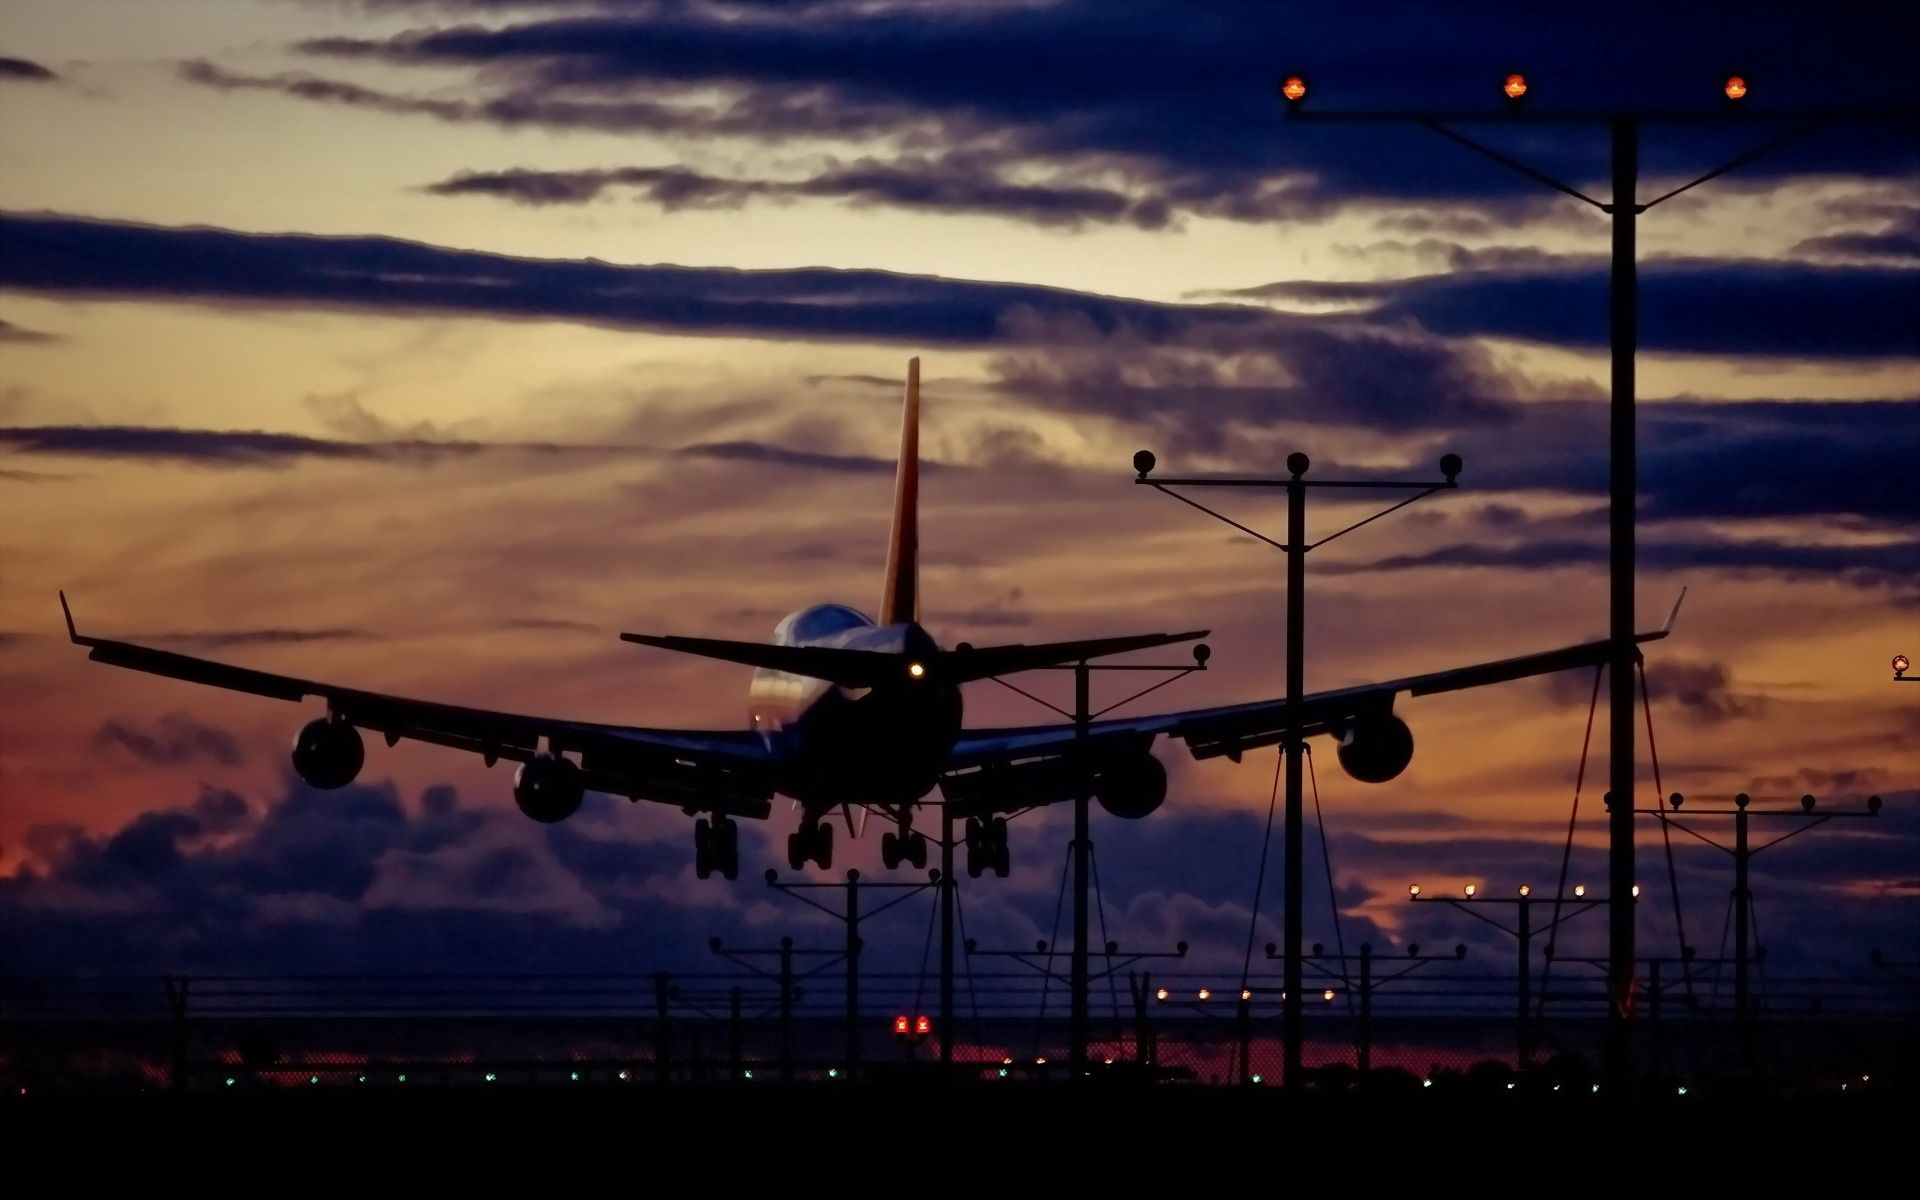 106988 download wallpaper Miscellanea, Miscellaneous, Plane, Airplane, Sky, Traffic, Movement, Night screensavers and pictures for free